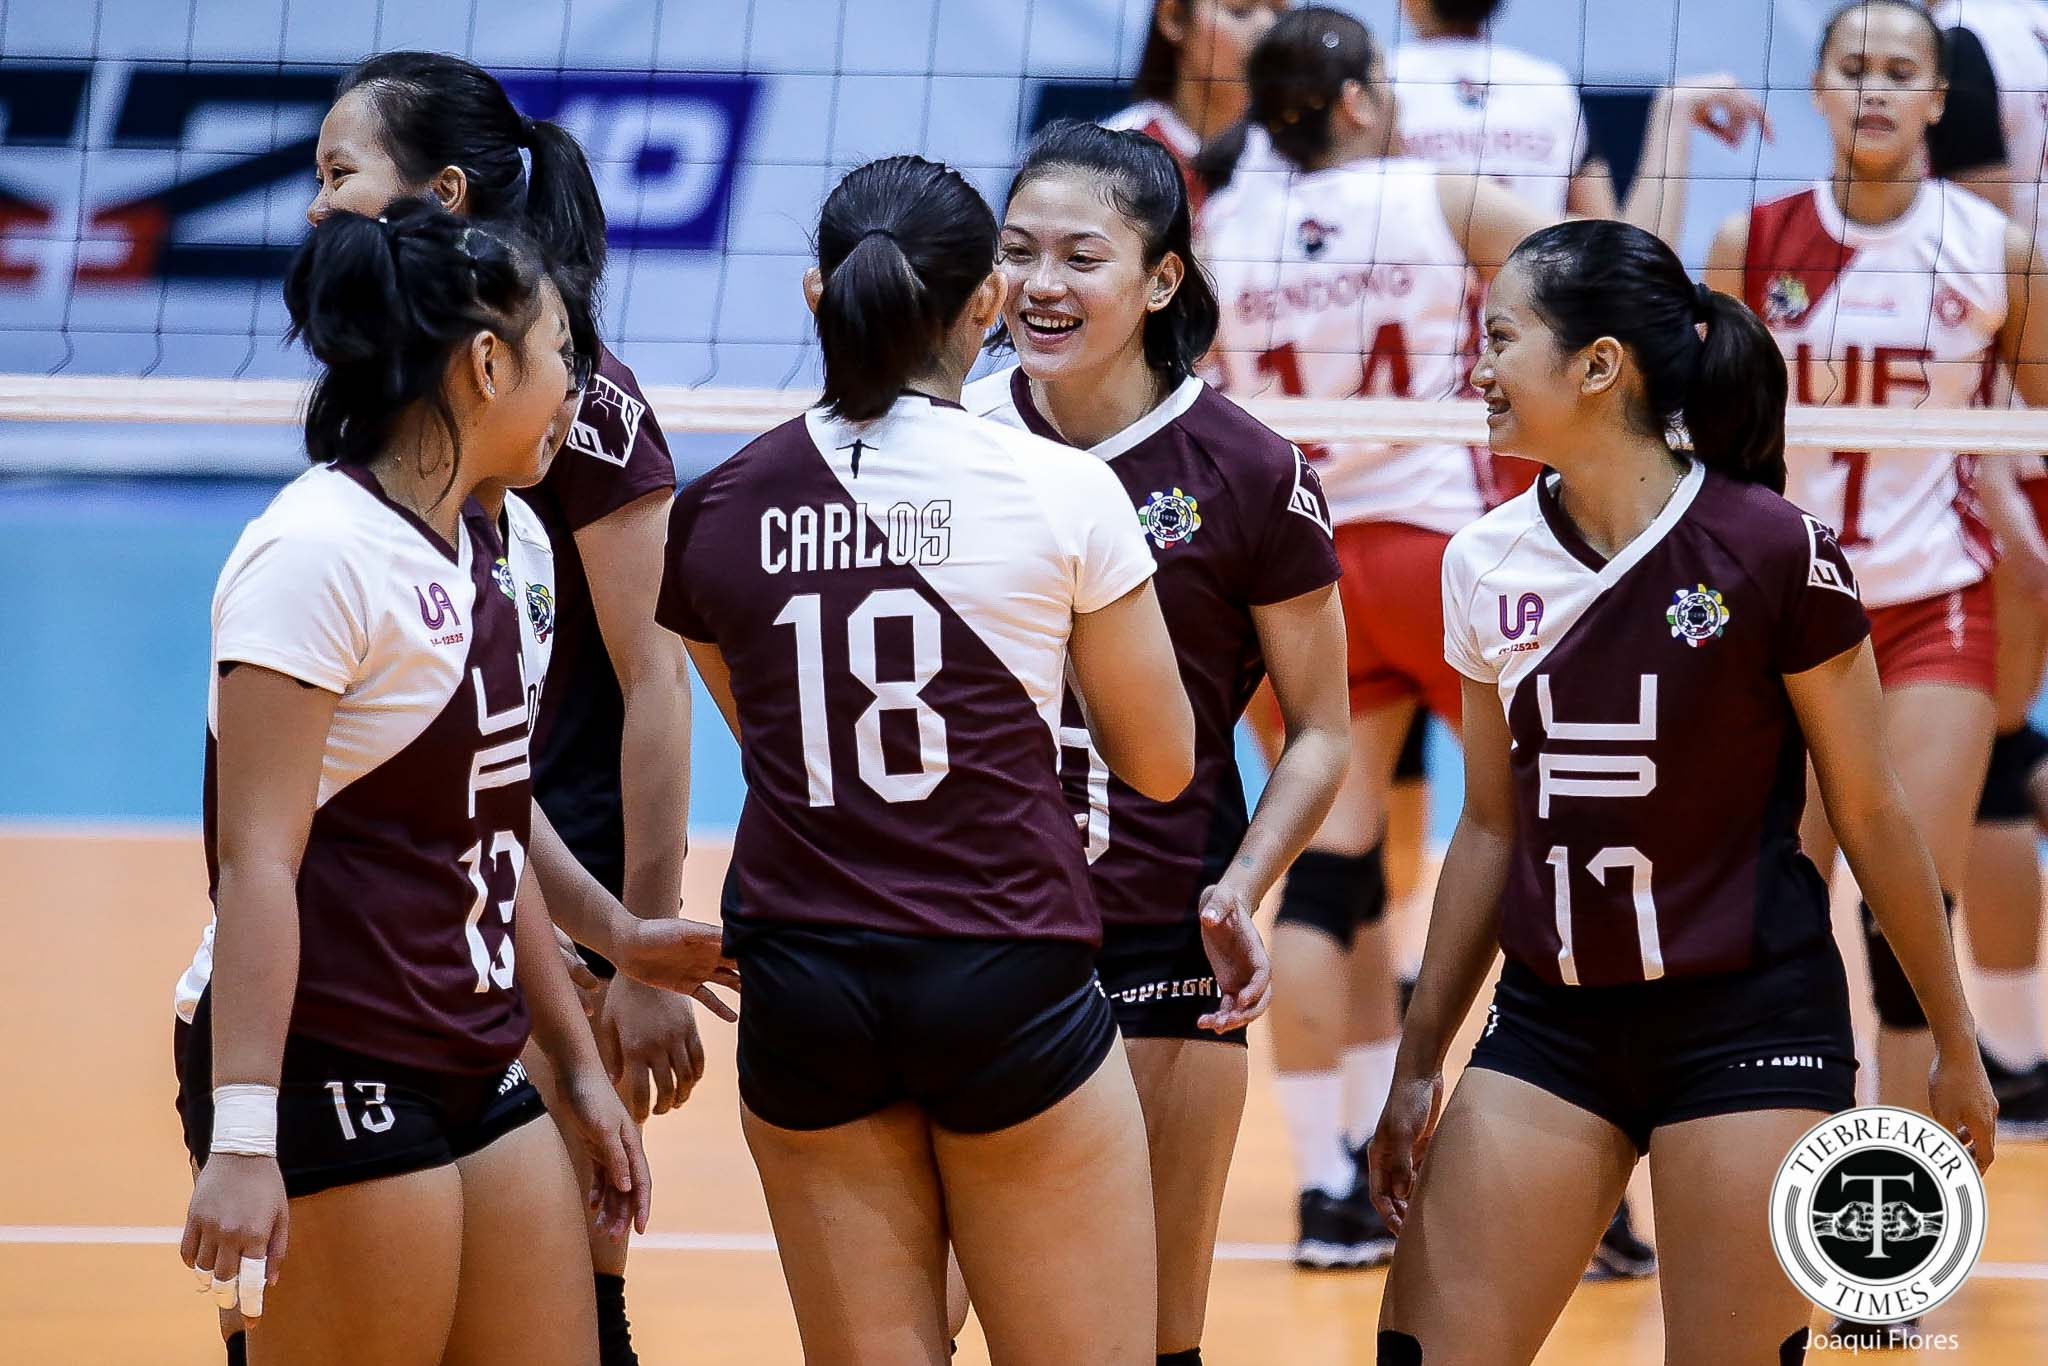 Tiebreaker Times Molde, Carlos, four seniors set for UP return in UAAP Season 82 News UAAP UP Volleyball  UP Women's Volleyball UAAP Season 82 Women's Volleyball UAAP Season 82 Tots Carlos Rem Cailing Marist Layug Jessma Ramos Isa Molde